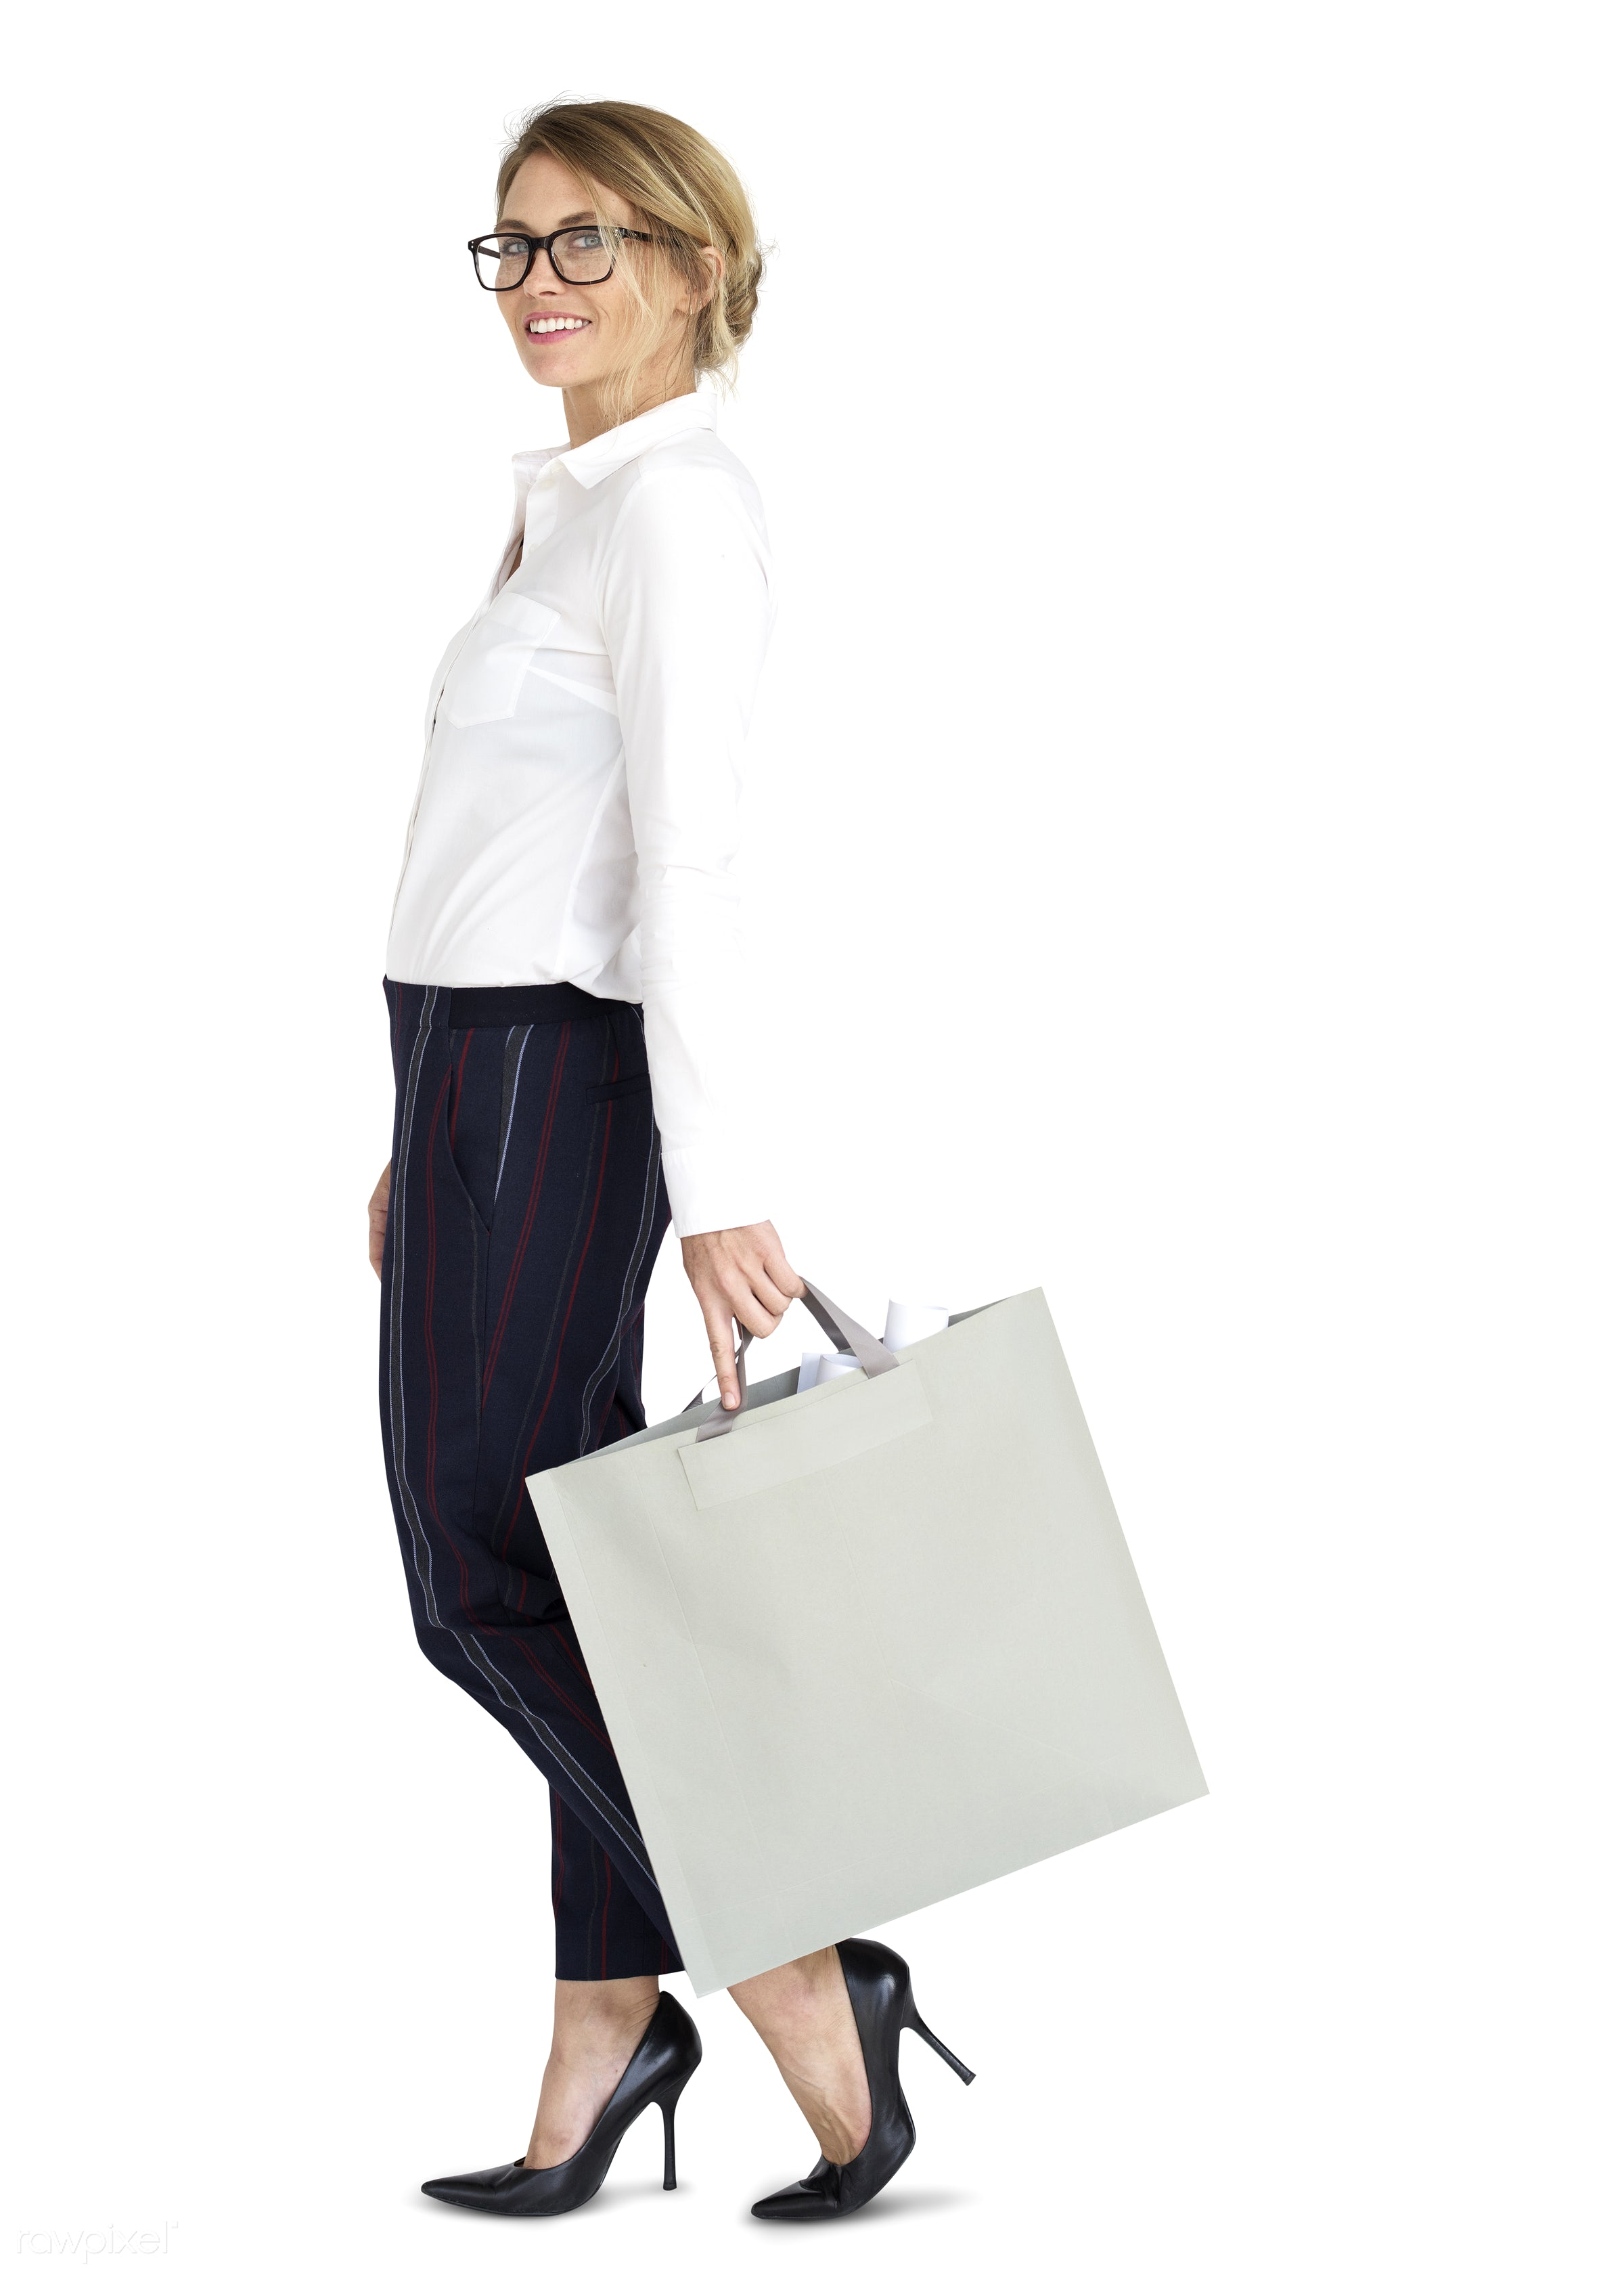 studio, expression, person, people, woman, smile, cheerful, smiling, isolated, bag, white, happiness, businesswoman,...